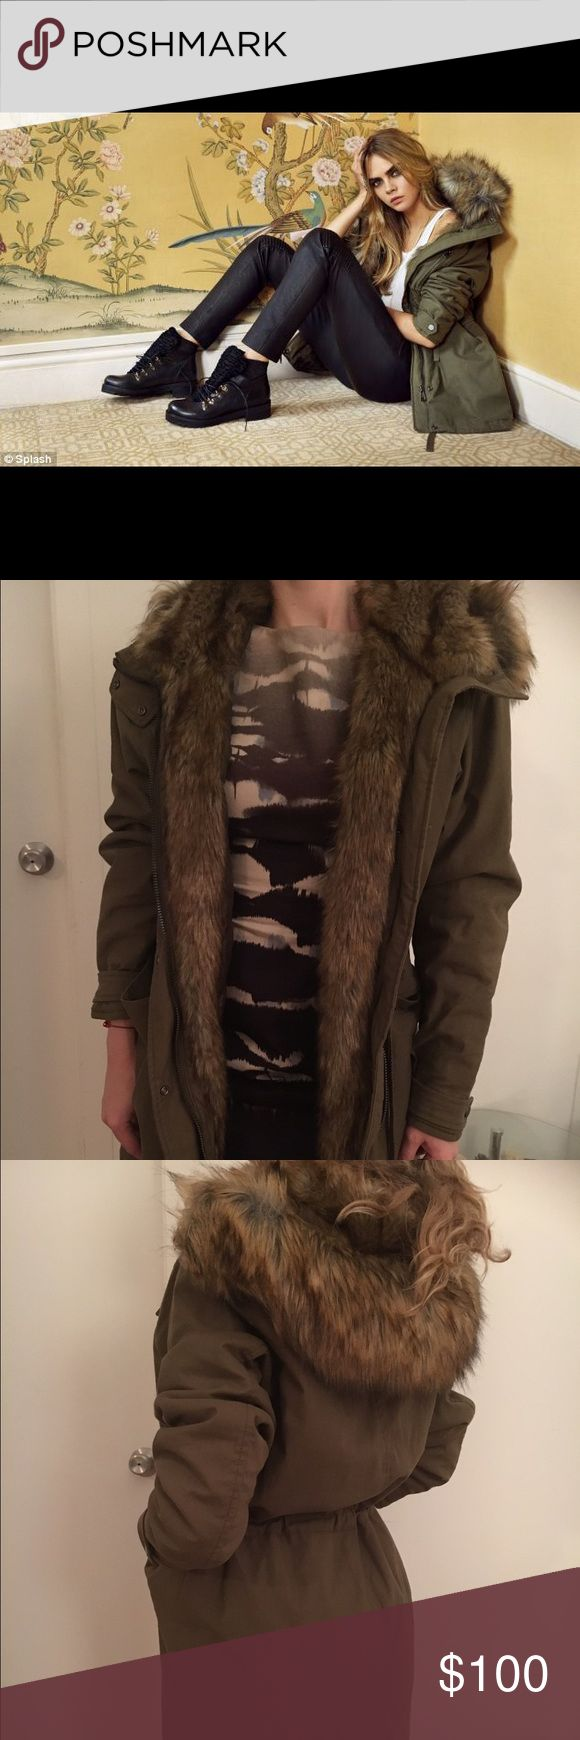 TopShop parka, excellent condition,worn few times TopShop parka from the fall-winter 2014 collection, excellent condition,worn a couple of times, beautiful fur collar and lining; color is olive Topshop Jackets & Coats Utility Jackets